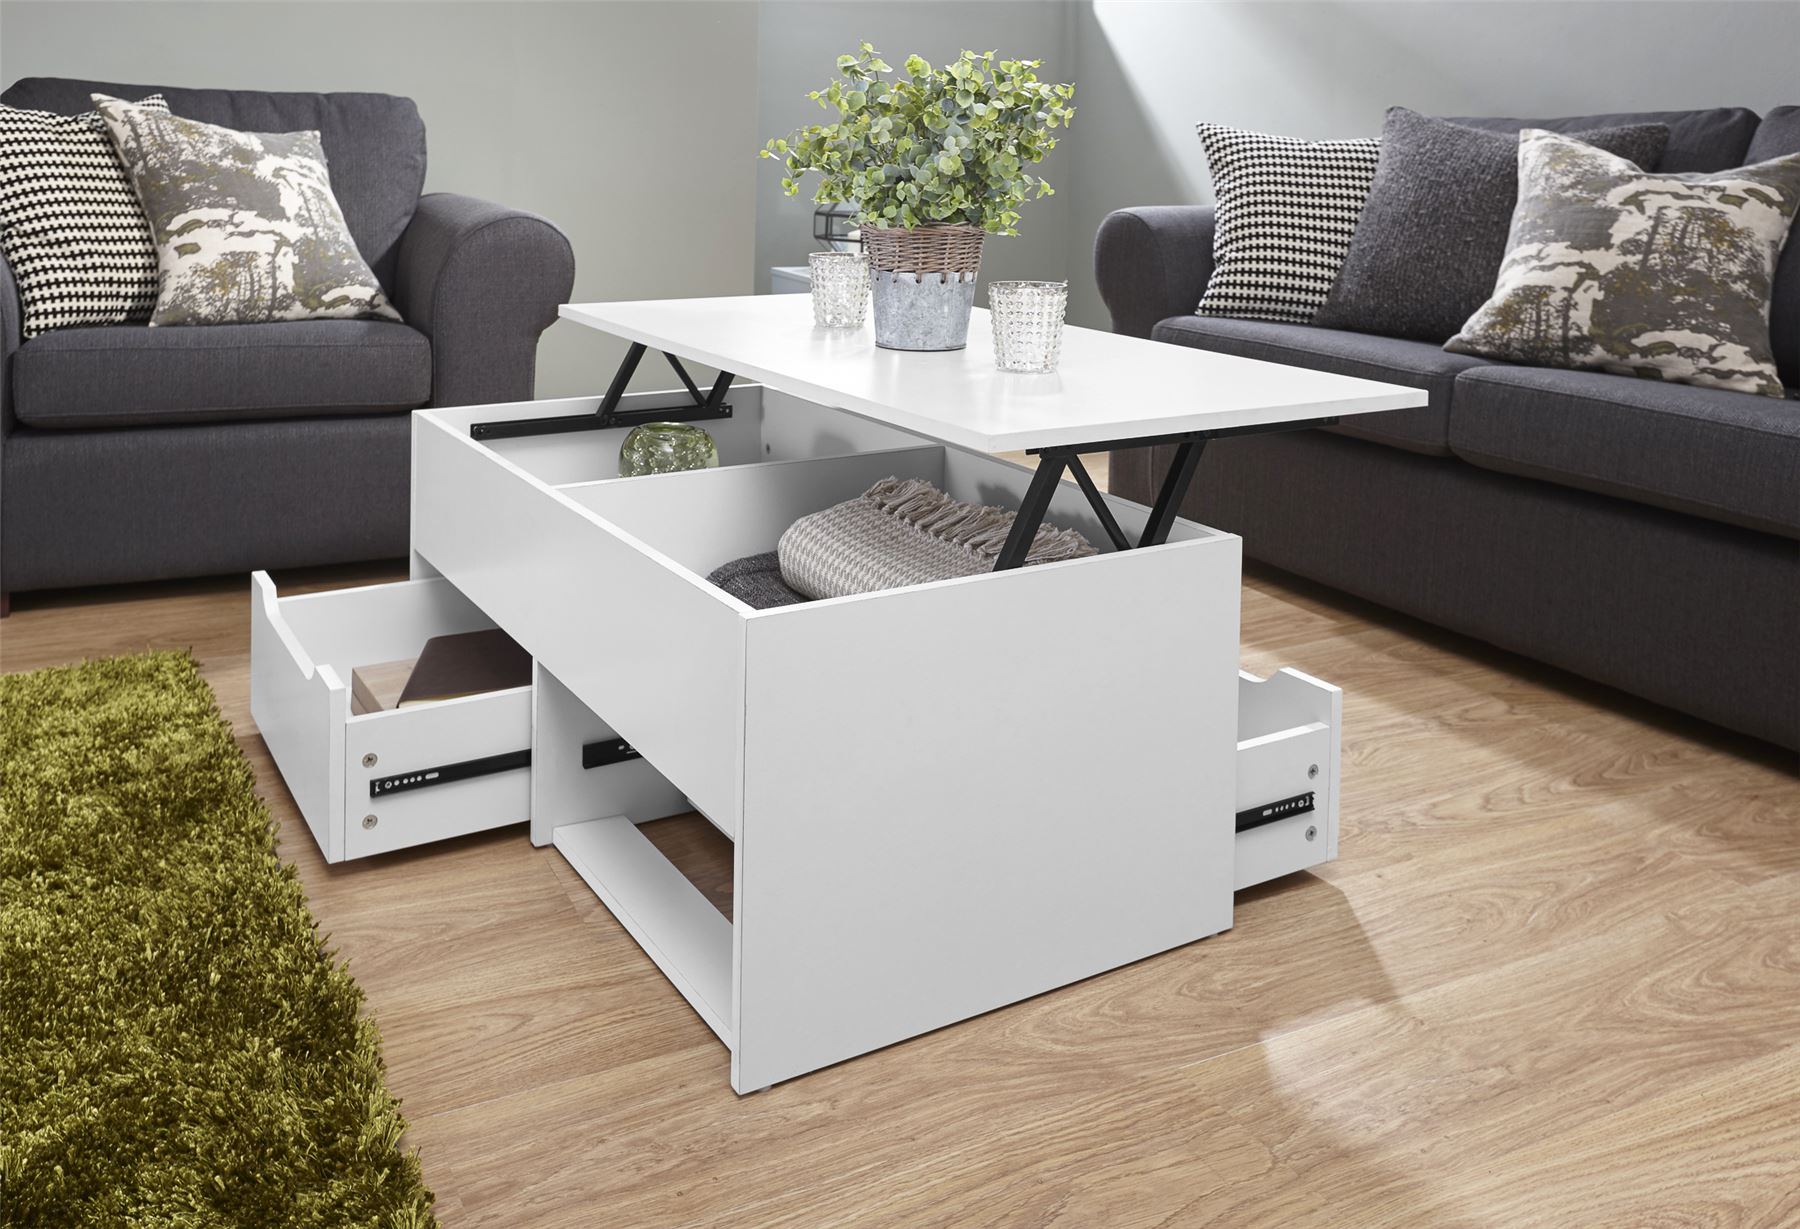 ULTIMATE STORAGE LIFT UP COFFEE TABLE TEA SPLIT LEVEL TOP TABLE W